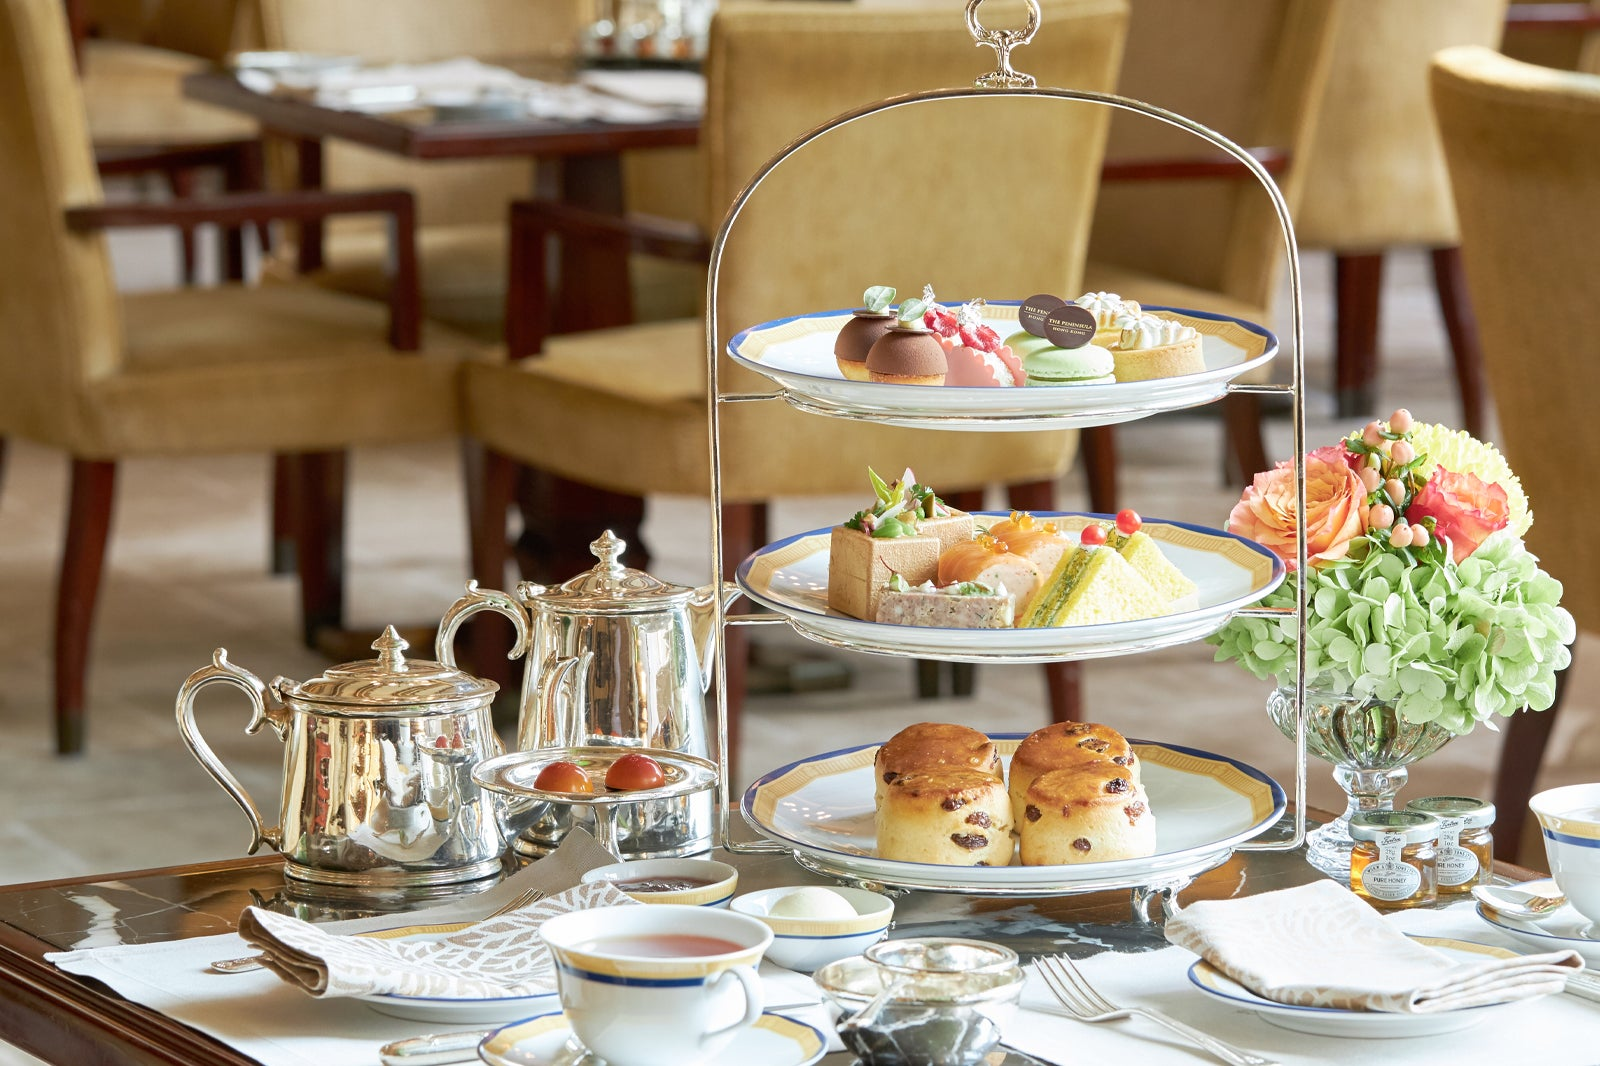 4 Best Afternoon Teas in Hong Kong - Where to Go for High Tea in Hong Kong